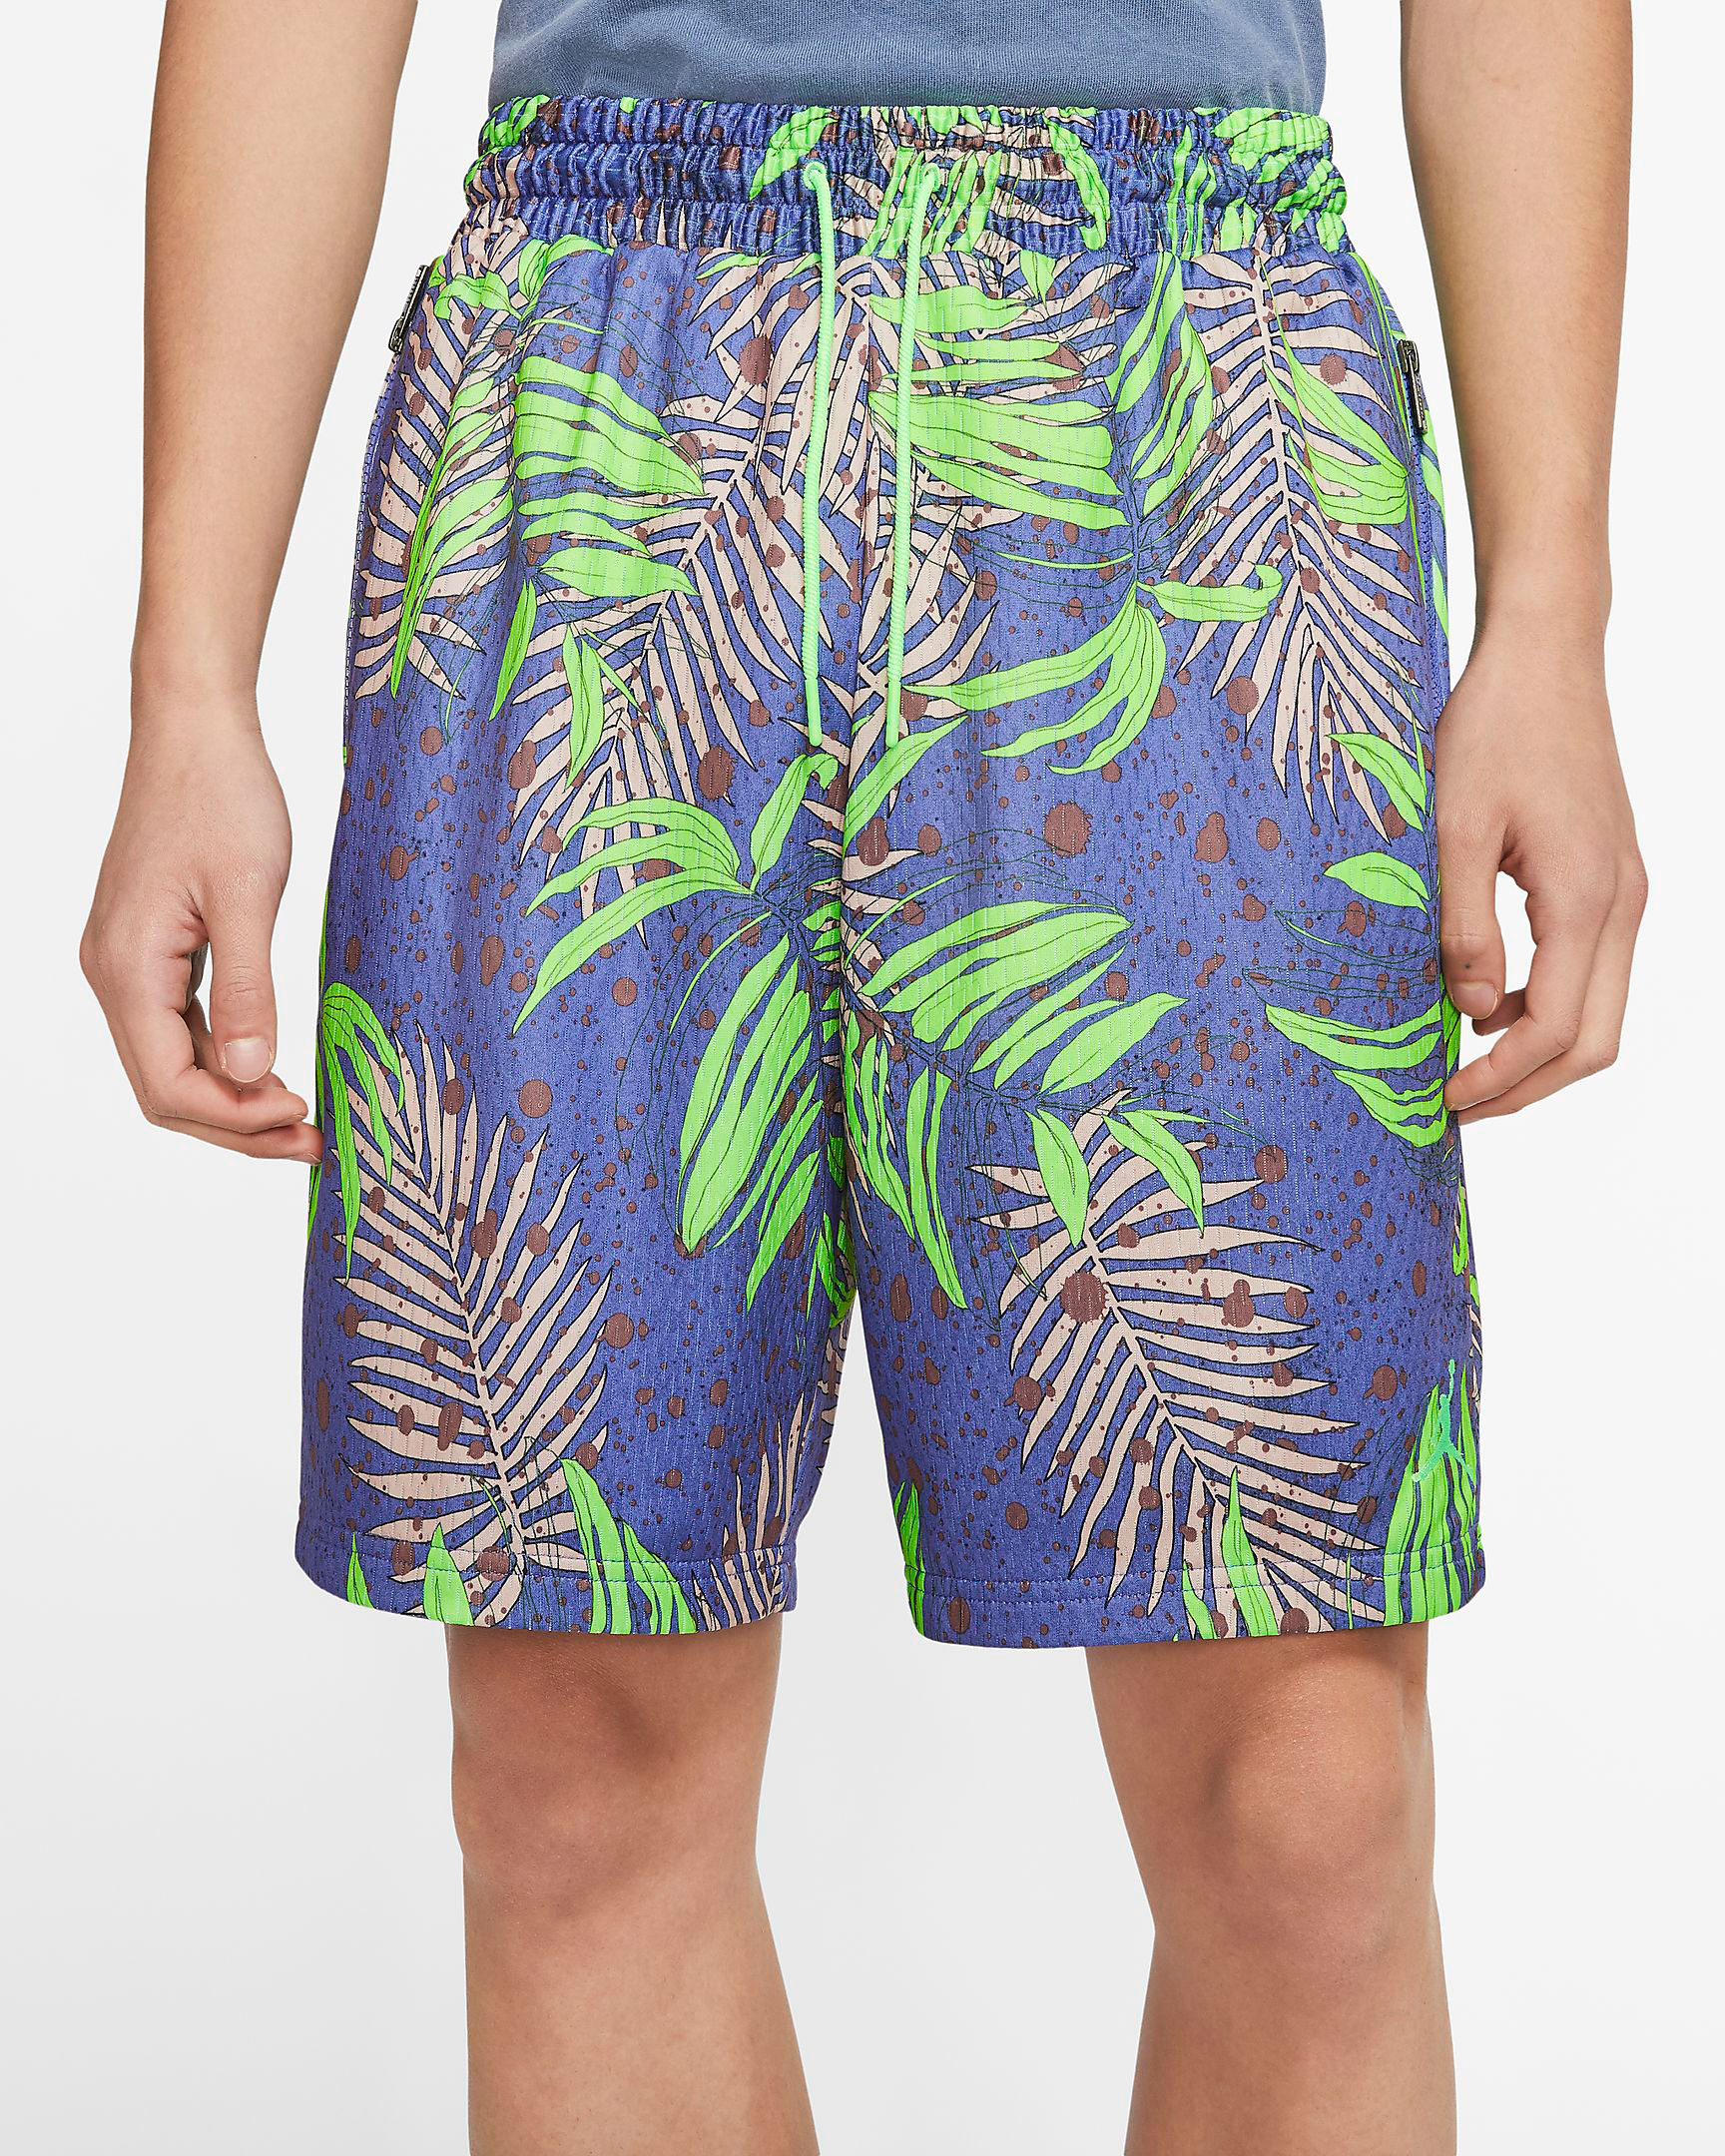 jordan-1-high-zen-green-shorts-match